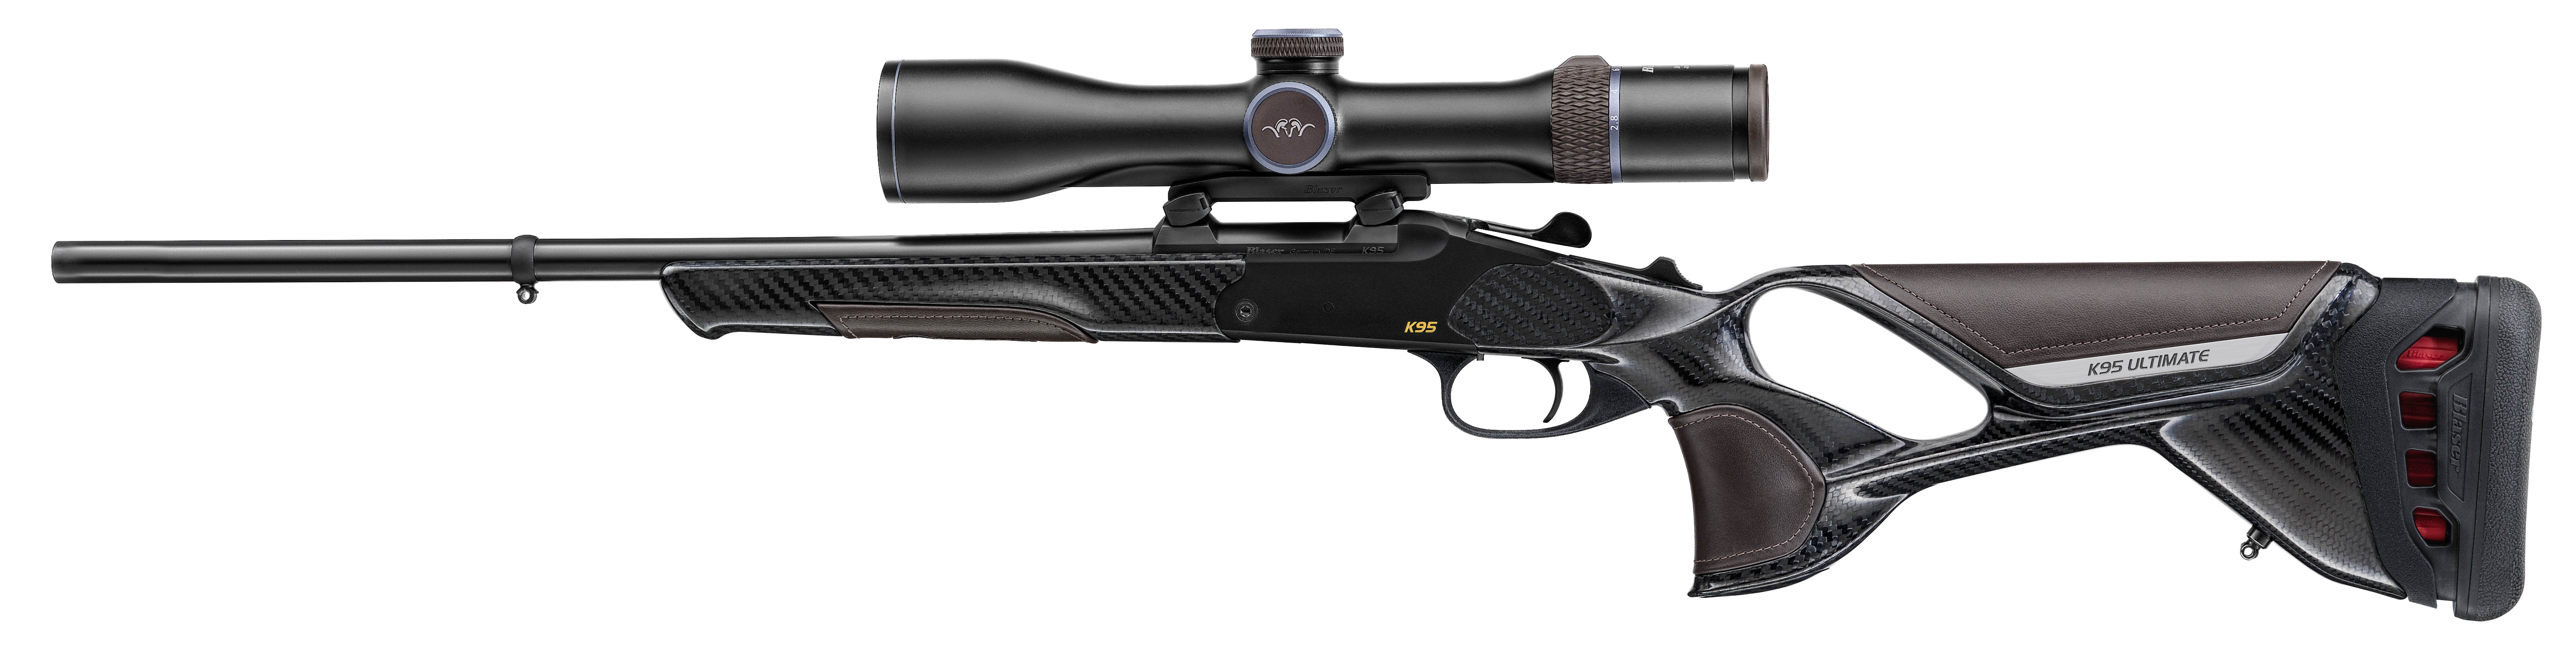 Blaser K95 Ultimate Carbon RDS